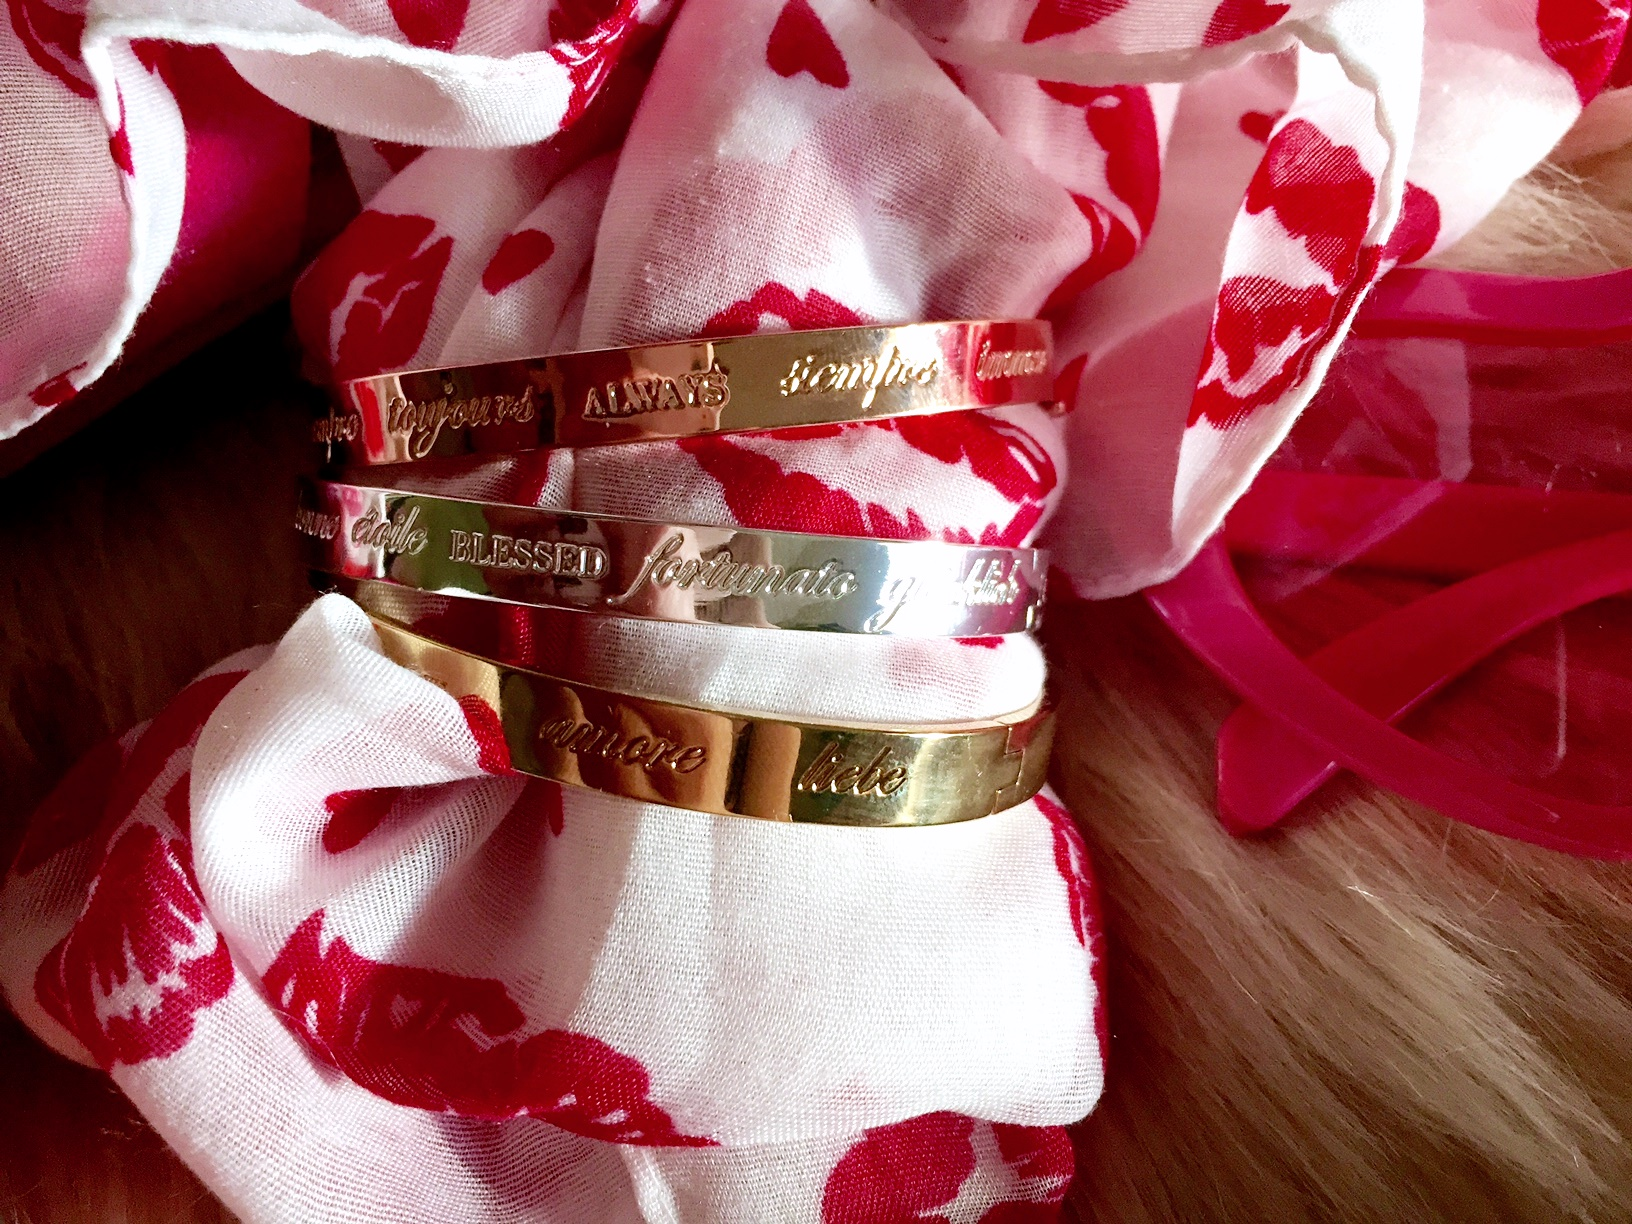 Love, Always, and Blessed bangles in different languages.